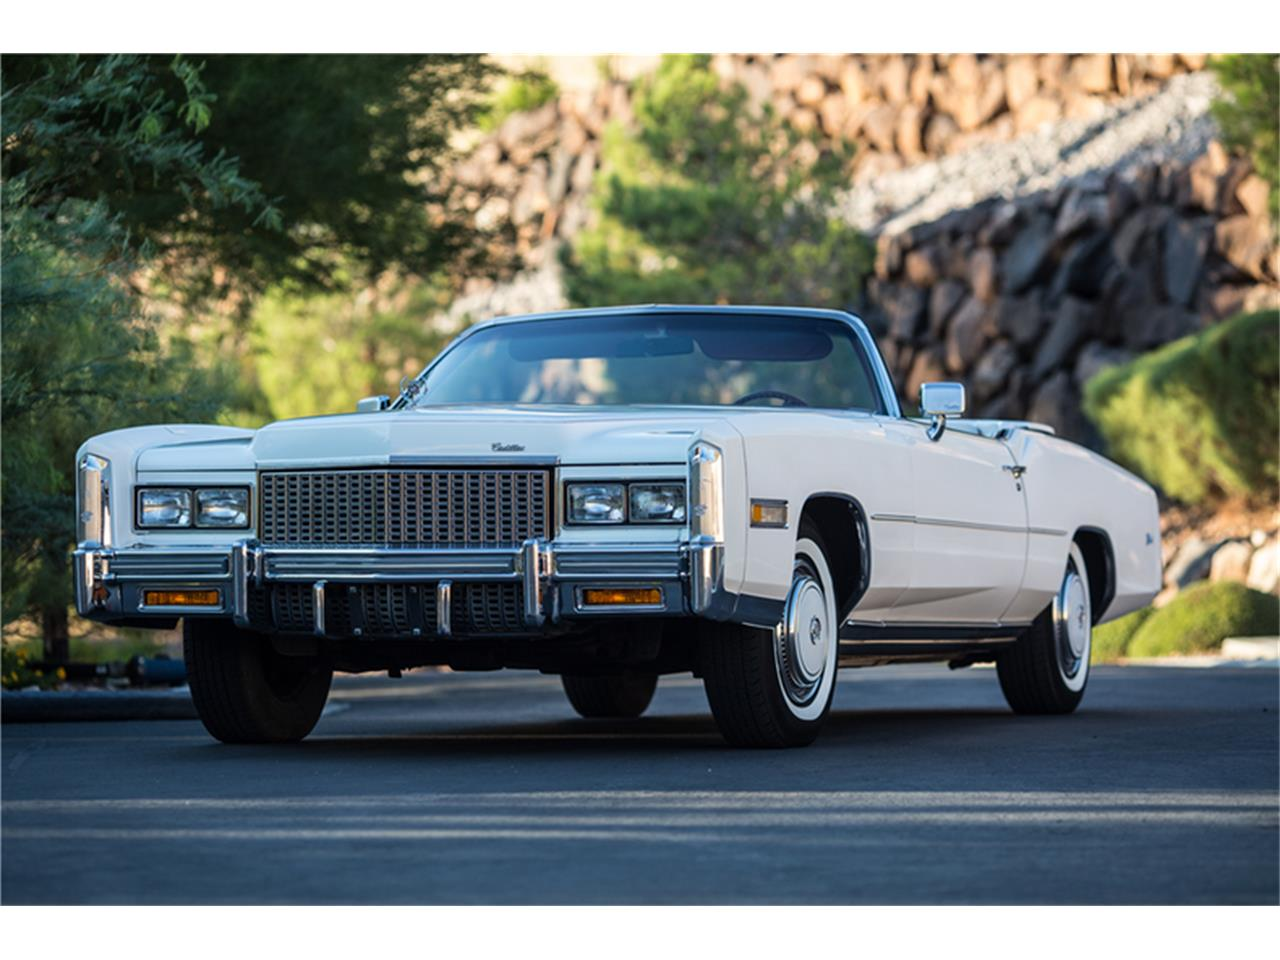 Large Picture of '76 Cadillac Eldorado located in Orlando Florida - $45,000.00 - N93X